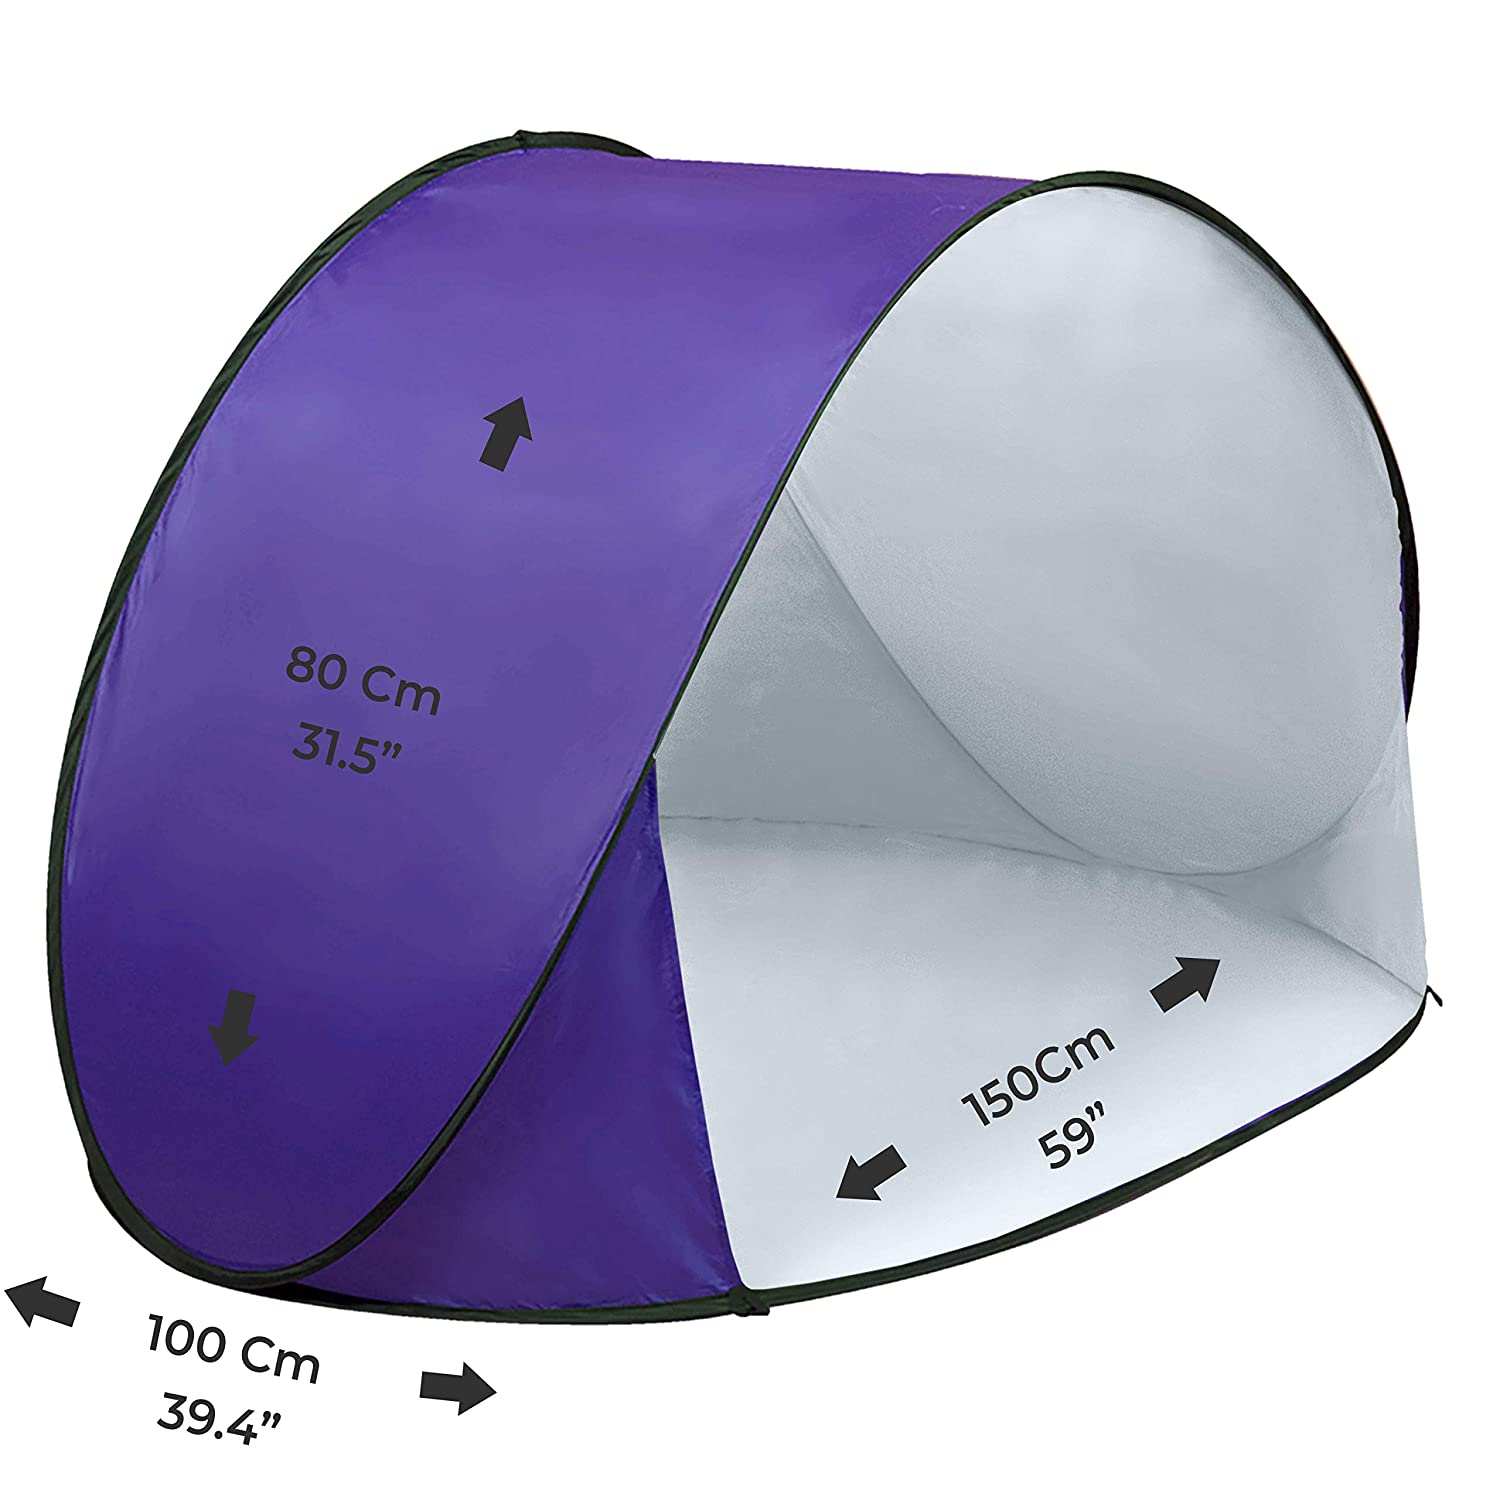 Thermalabs Pluto Purple Beach Tent: An amazing accessory for your kids comfort From Wind /& Rain Deluxe lightweight Toddlers tent with carrying bag Keep Your Baby Away From the Heat of the Sun